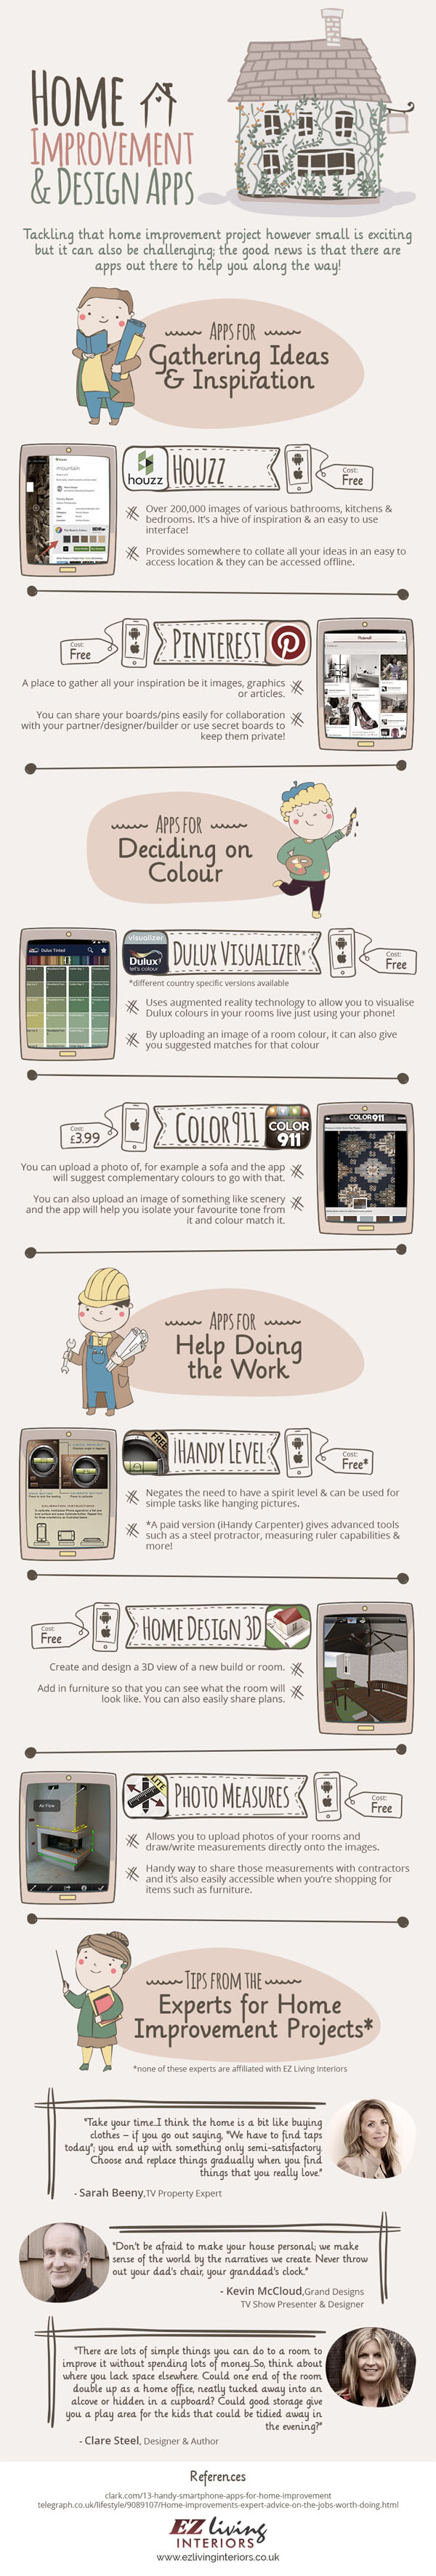 Home Renovation Apps a guide to home improvement & design apps